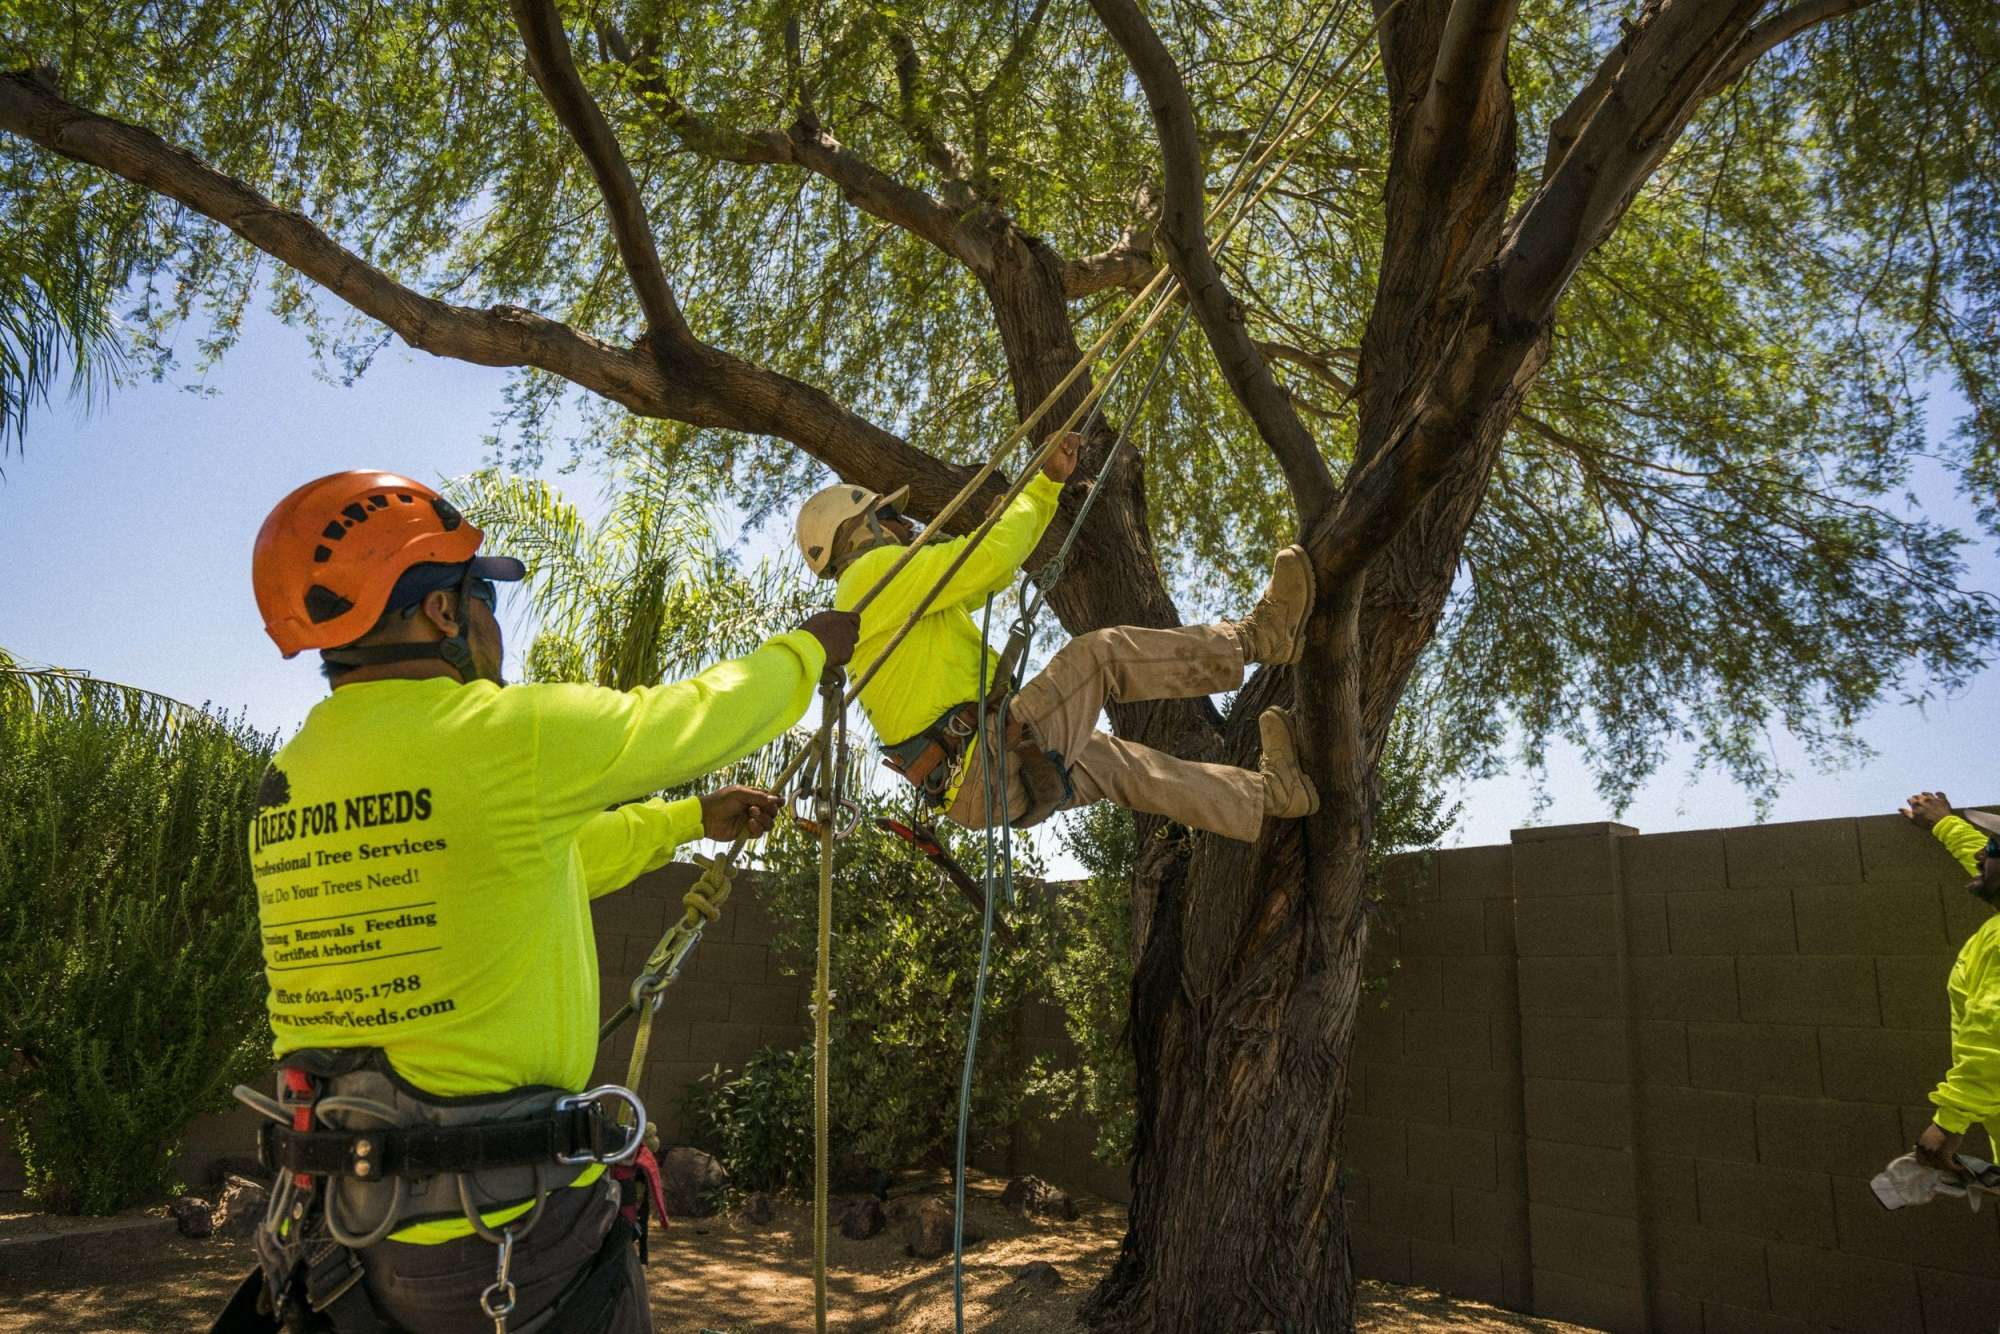 Chula Vista CA Tree Trimming and Stump Grinding Services Home Page Image-We Offer Tree Trimming Services, Tree Removal, Tree Pruning, Tree Cutting, Residential and Commercial Tree Trimming Services, Storm Damage, Emergency Tree Removal, Land Clearing, Tree Companies, Tree Care Service, Stump Grinding, and we're the Best Tree Trimming Company Near You Guaranteed!